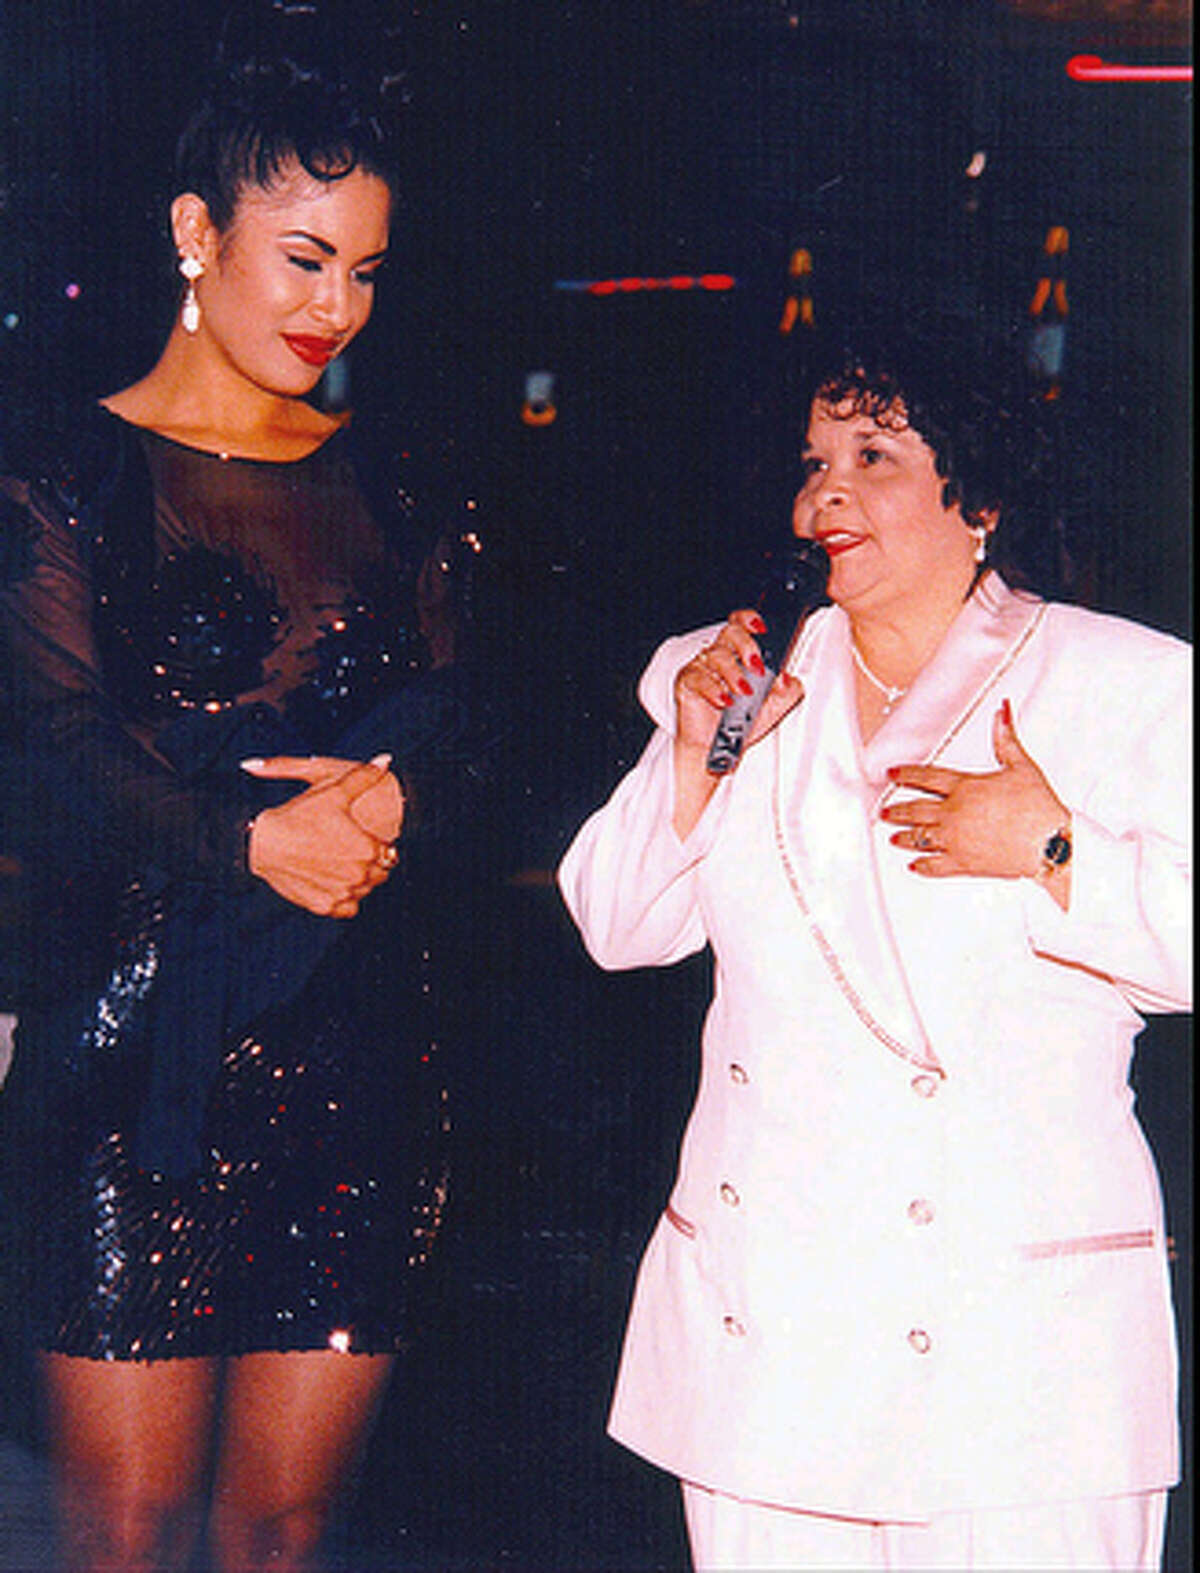 Tejano star Selena, left, watches as Yolanda Saldivar speaks to a crowd at a post-1994 Tejano Music Awards party in San Antonio, Texas.